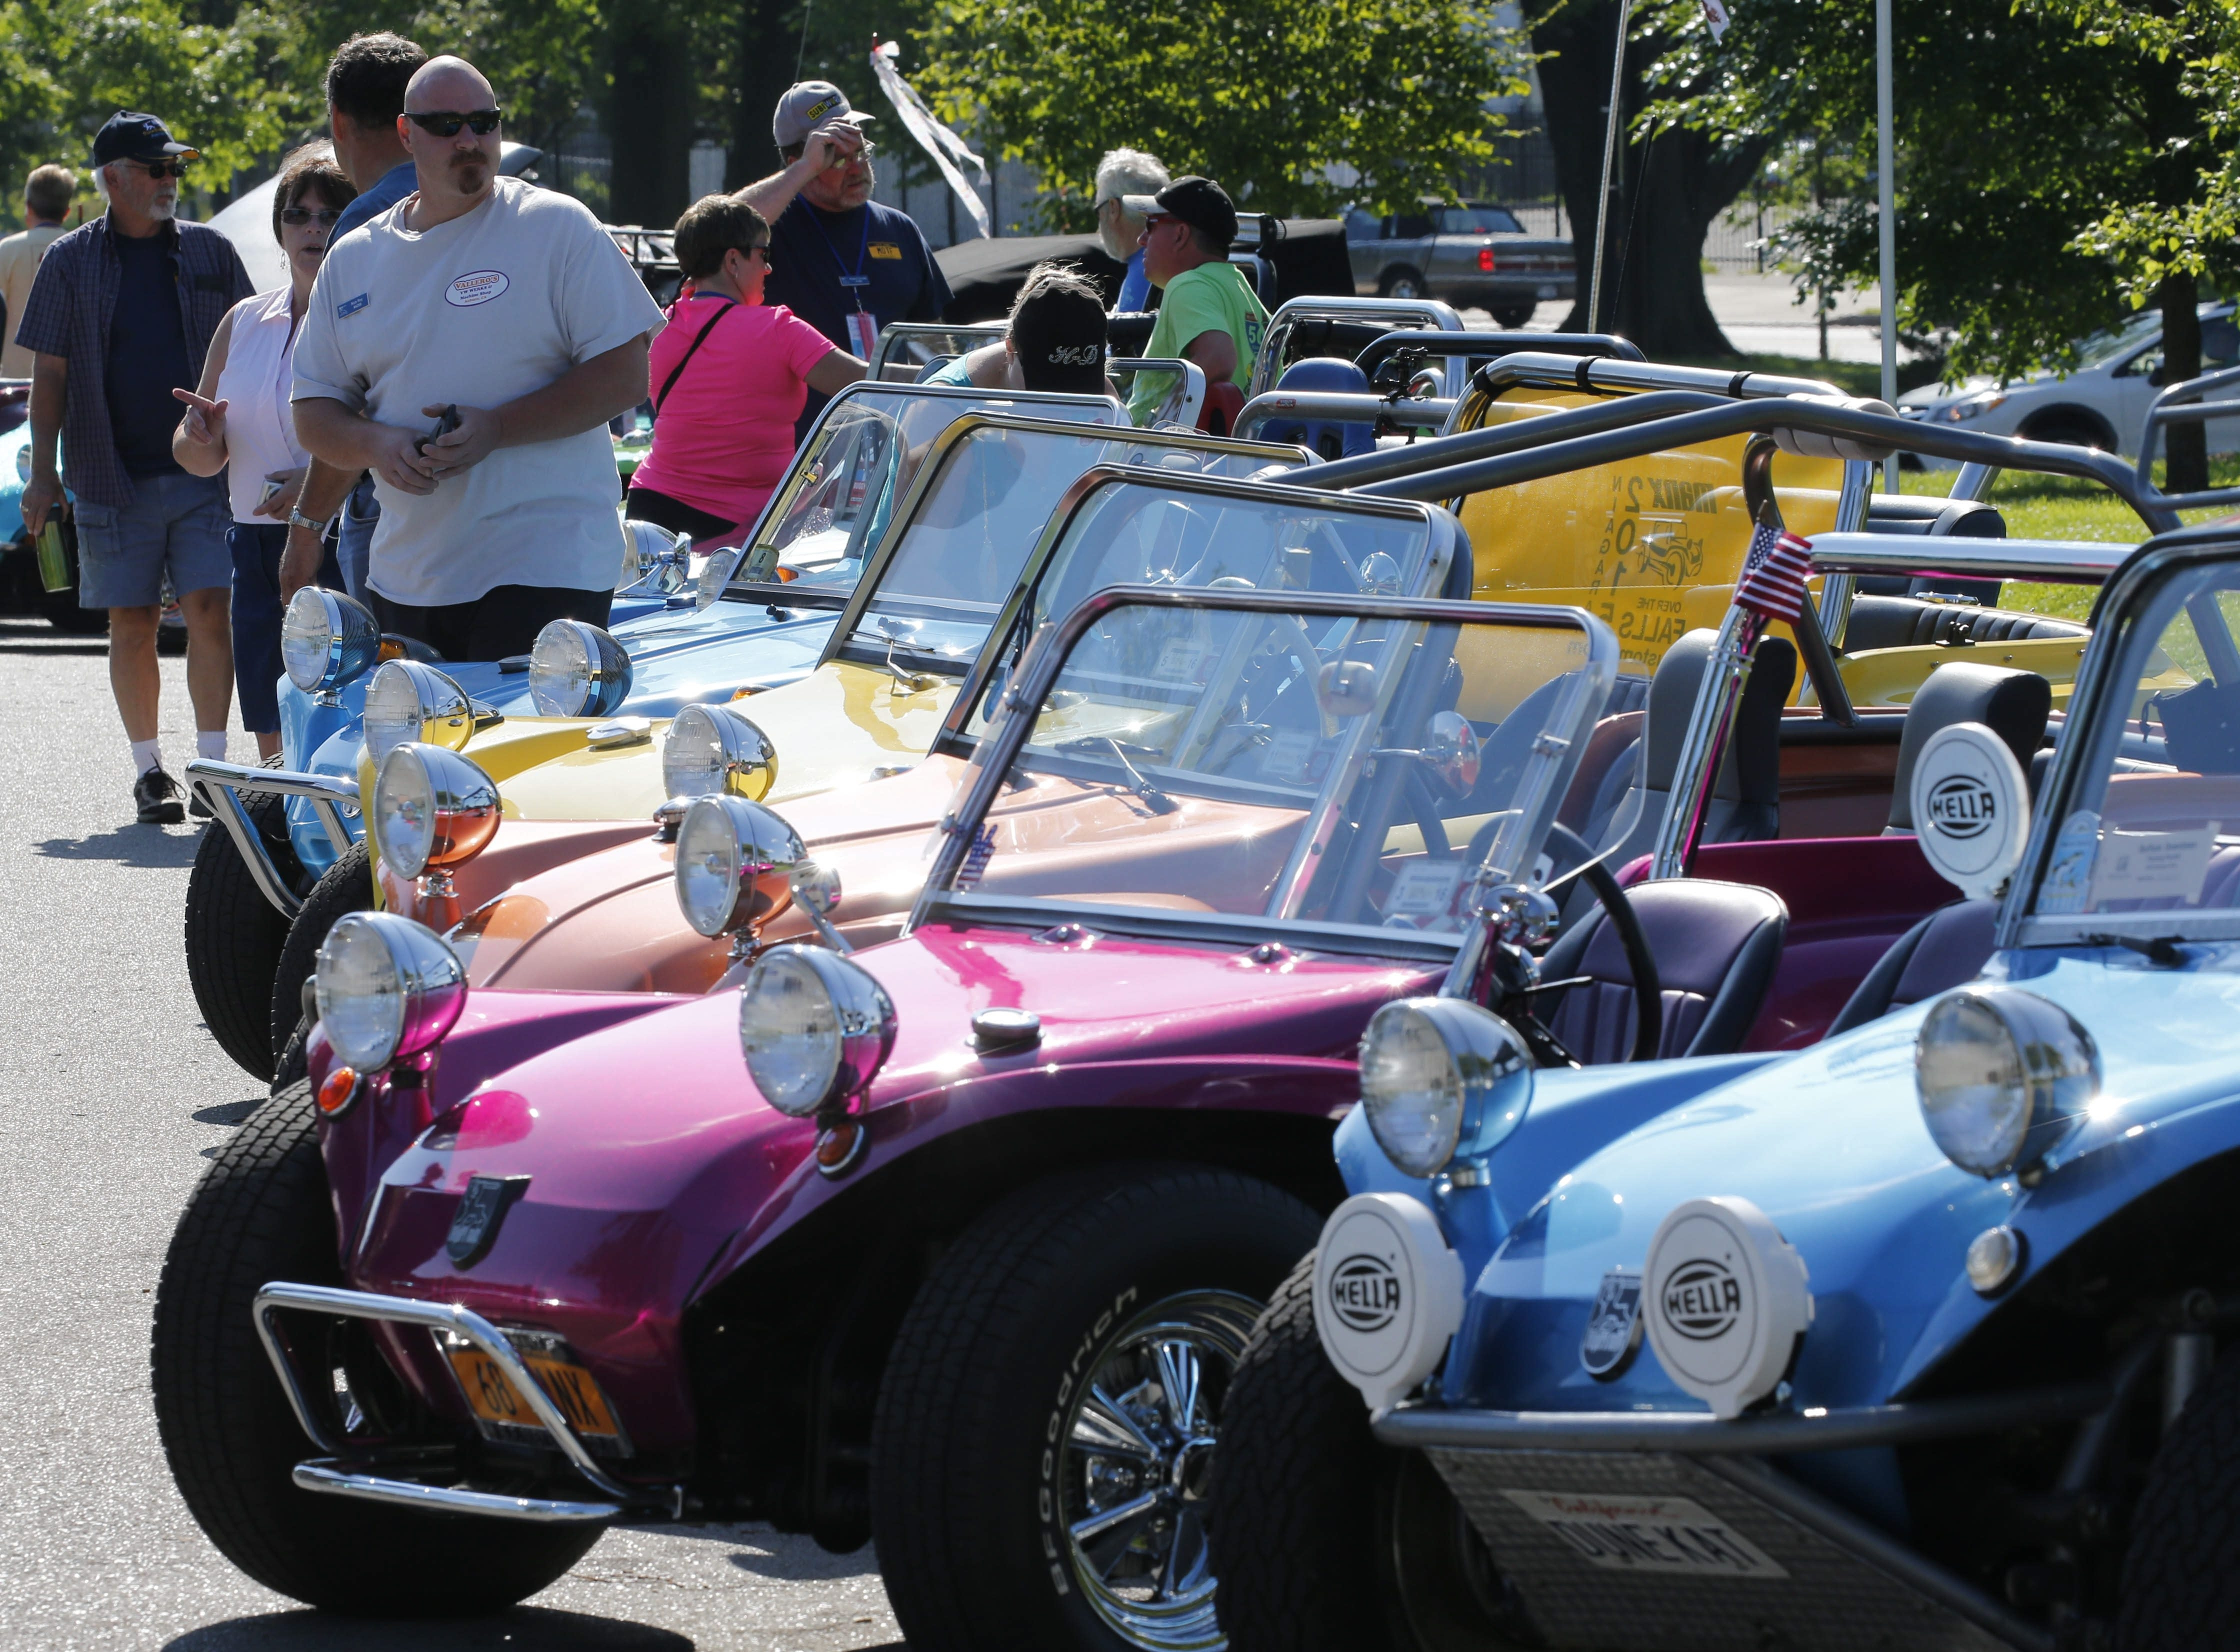 Dune buggies and drivers from around the country assemble at Front Park for the first Manx Over The Falls ride, Friday, June 26, 2015.  (Derek Gee/Buffalo News)